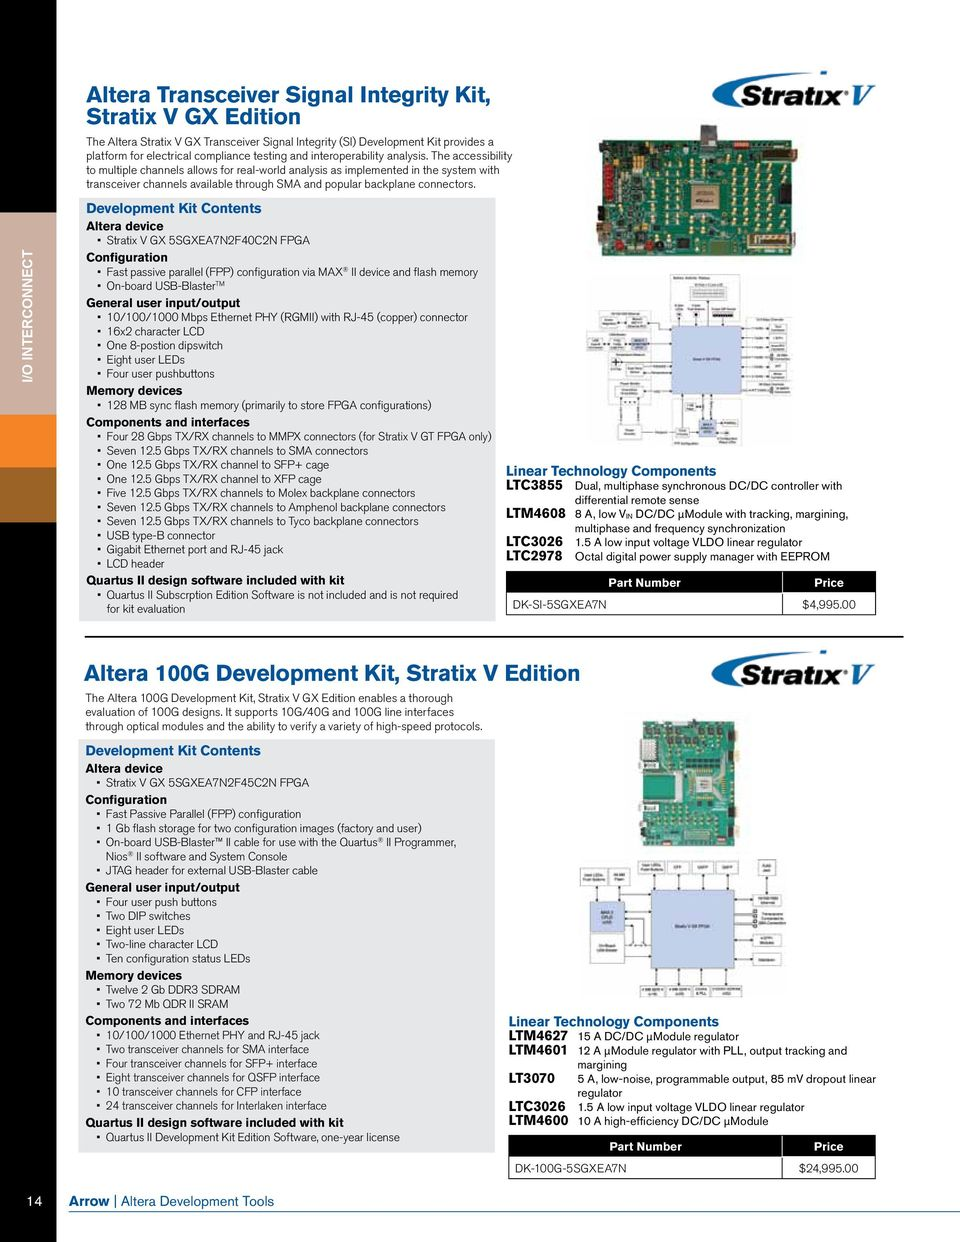 Altera Development Tools Pdf Linear Ltc4151 Voltage And Current Monitoring Device Datasheet The Accessibility To Multiple Channels Allows For Real World Analysis As Implemented In System